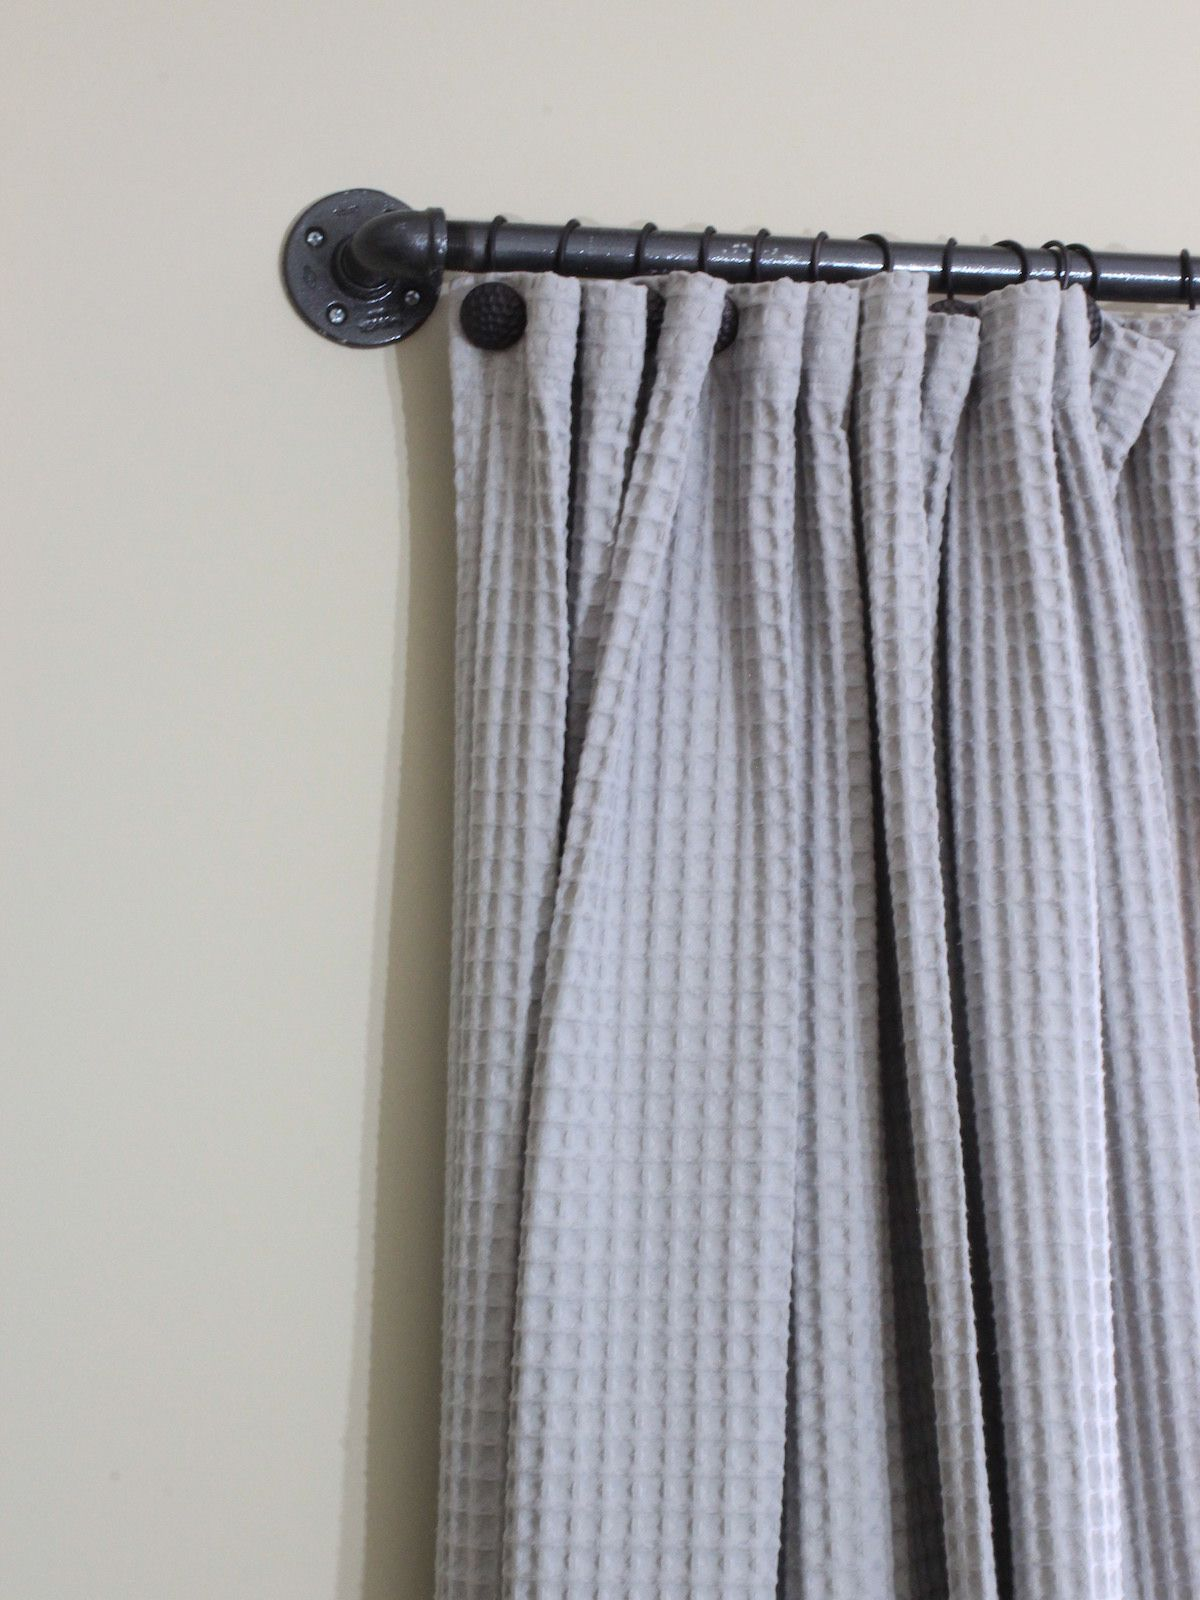 2017 06 types of curtains - 6 Ways To Make Your Own Curtain Rods